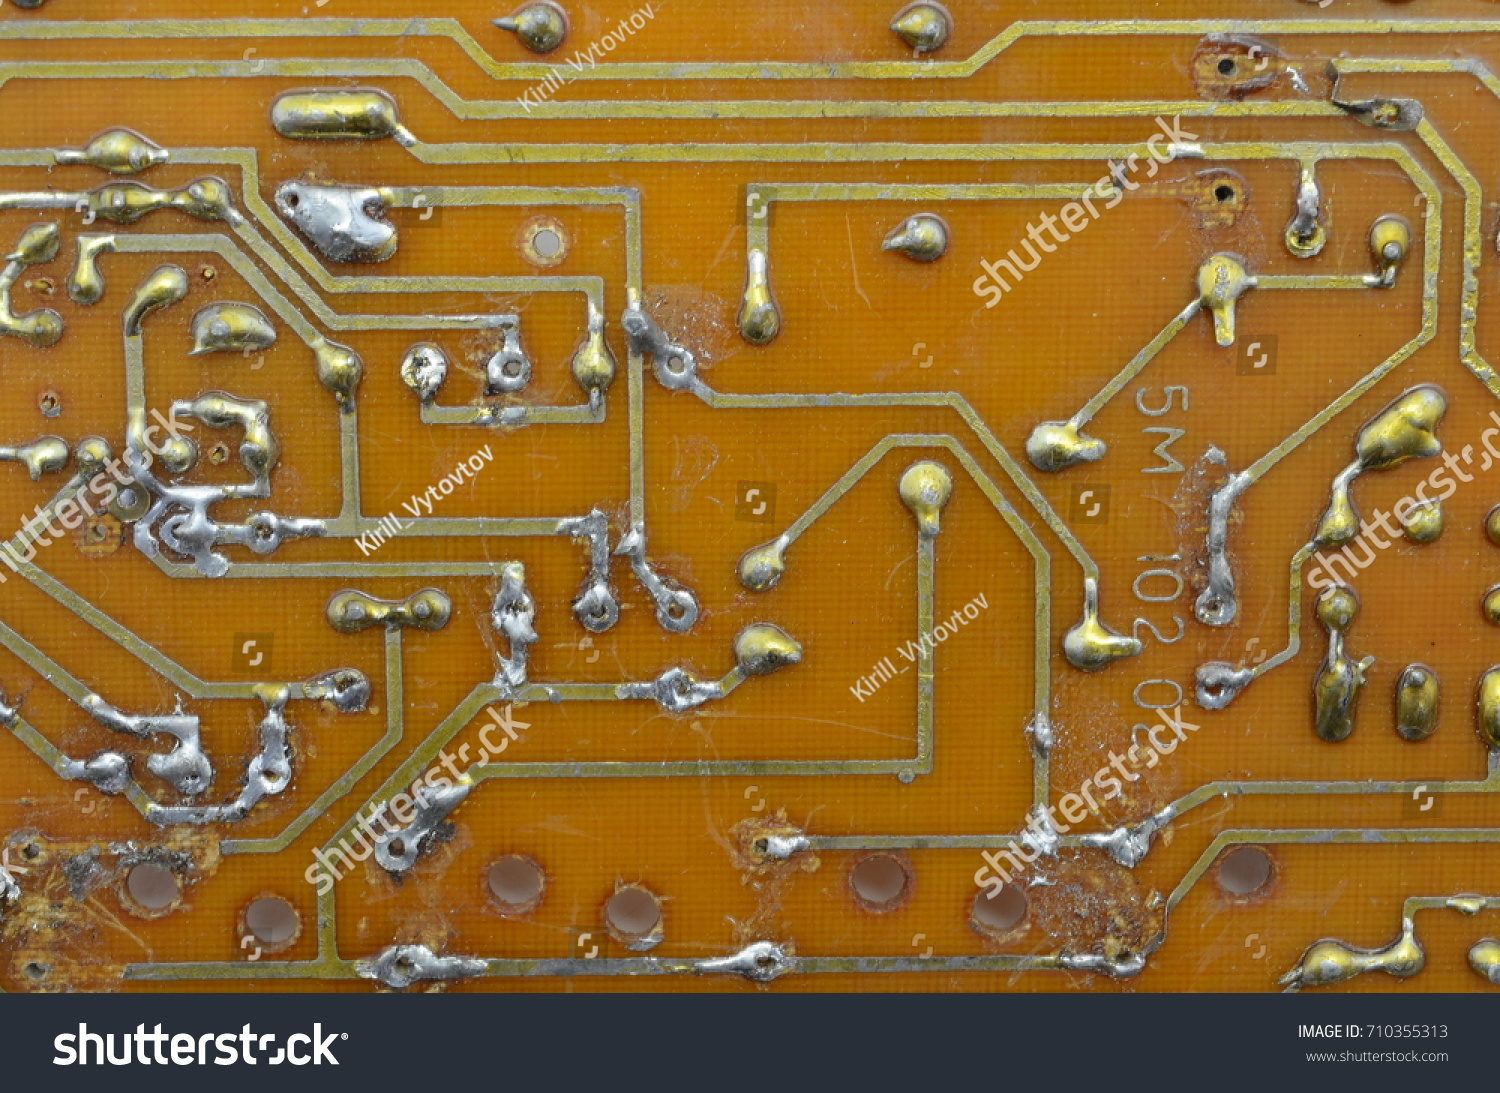 hight resolution of old homemade printed circuit board with electronic components and conductors background